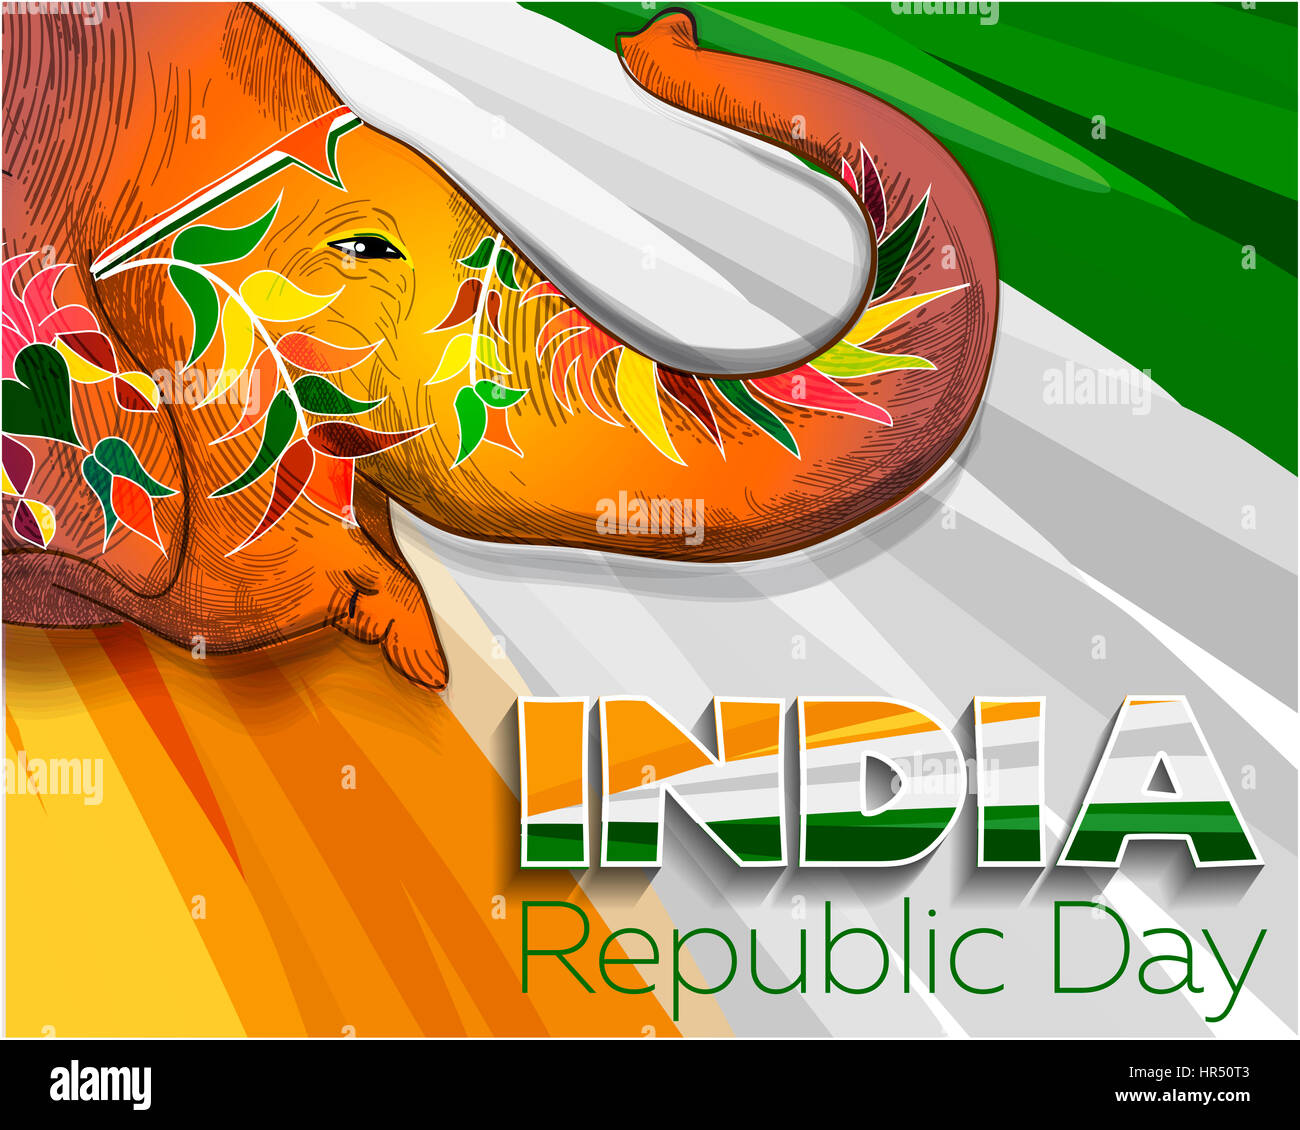 Greeting Card For Republic Day In India Stock Photo 134720099 Alamy